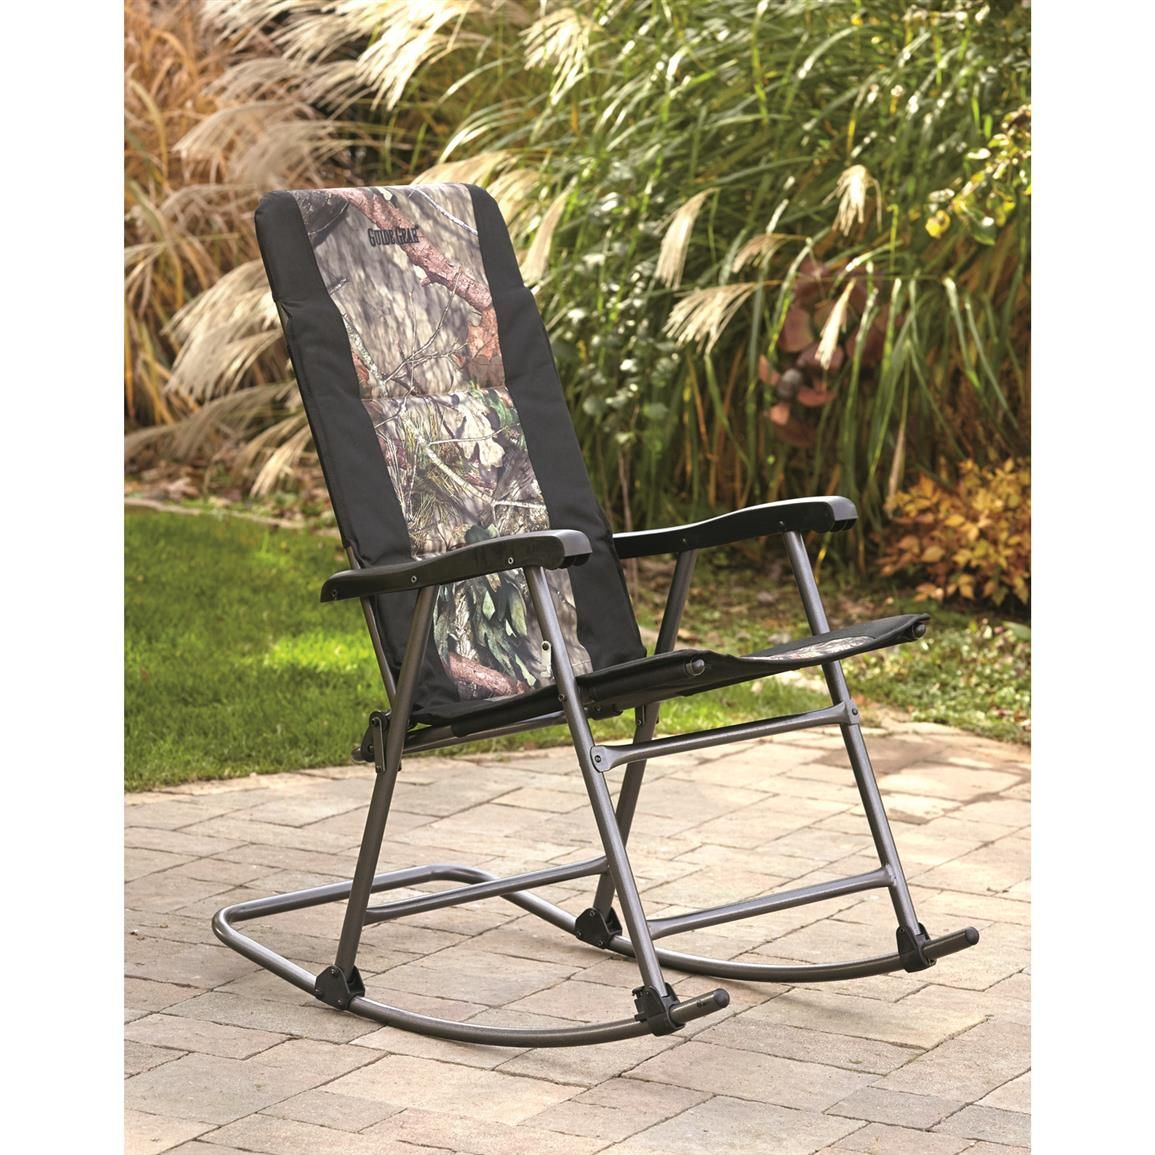 Camping Rocking Chairs Soft For Adults Guide Gear Oversized Mossy Oak Camo Chair 500 Lb Capacity 676358 At Sportsman S 79